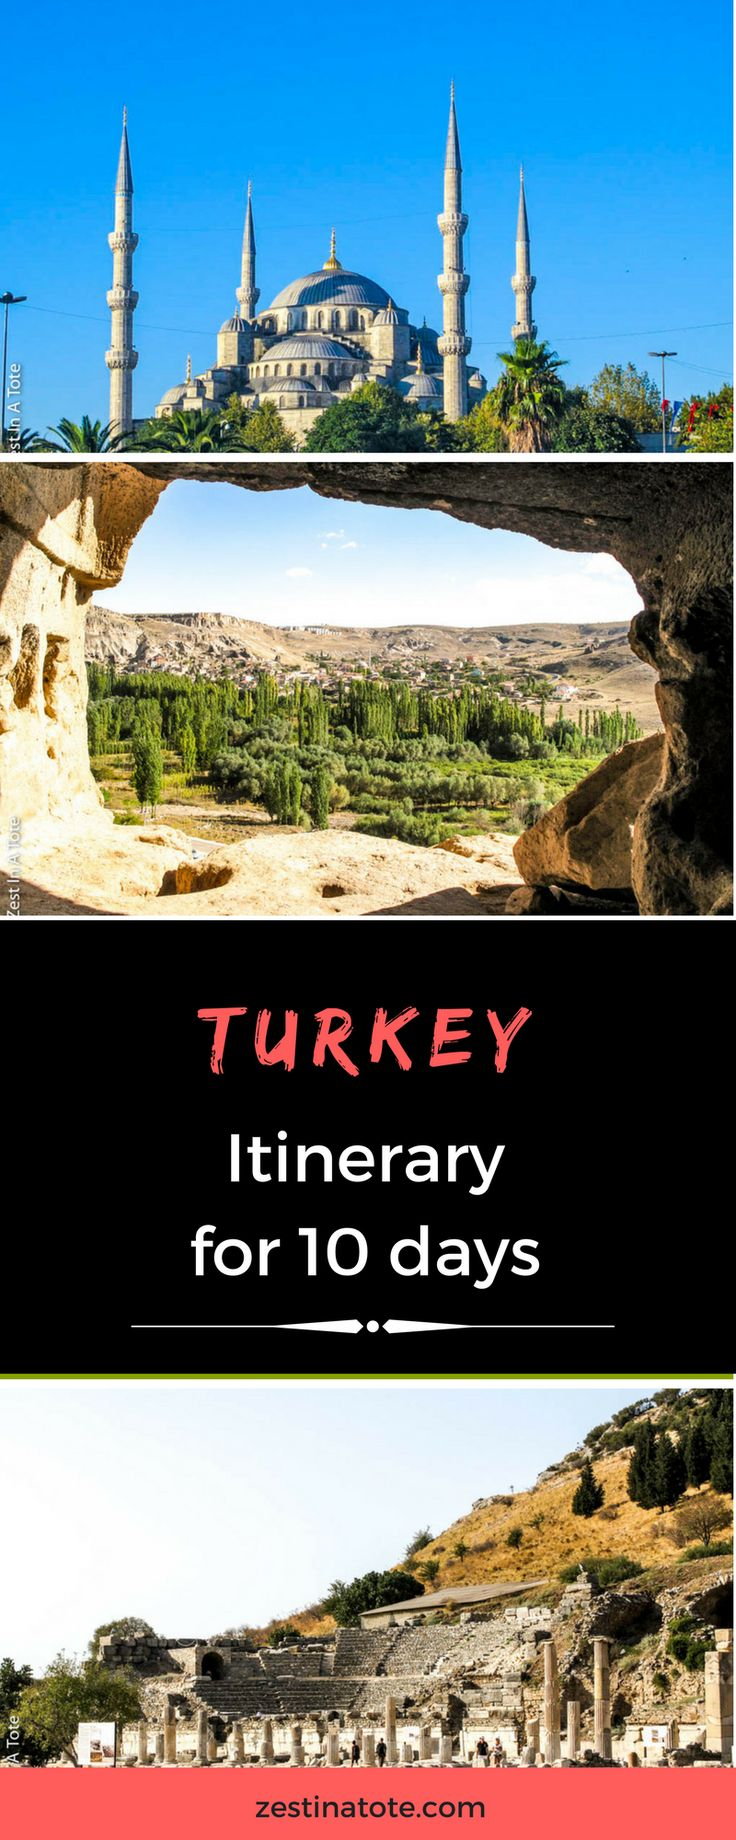 As first-time travelers to Turkey, we visited the best places in what is termed as the 'Cultural Triangle' - Istanbul, Cappadocia and Ephesus.  Turkey Itinerary   Places to visit in Turkey   Turkey in 10 days   #turkey #turkeyitinerary #placestovisitinturkey #istanbul #cappadocia #ephesus